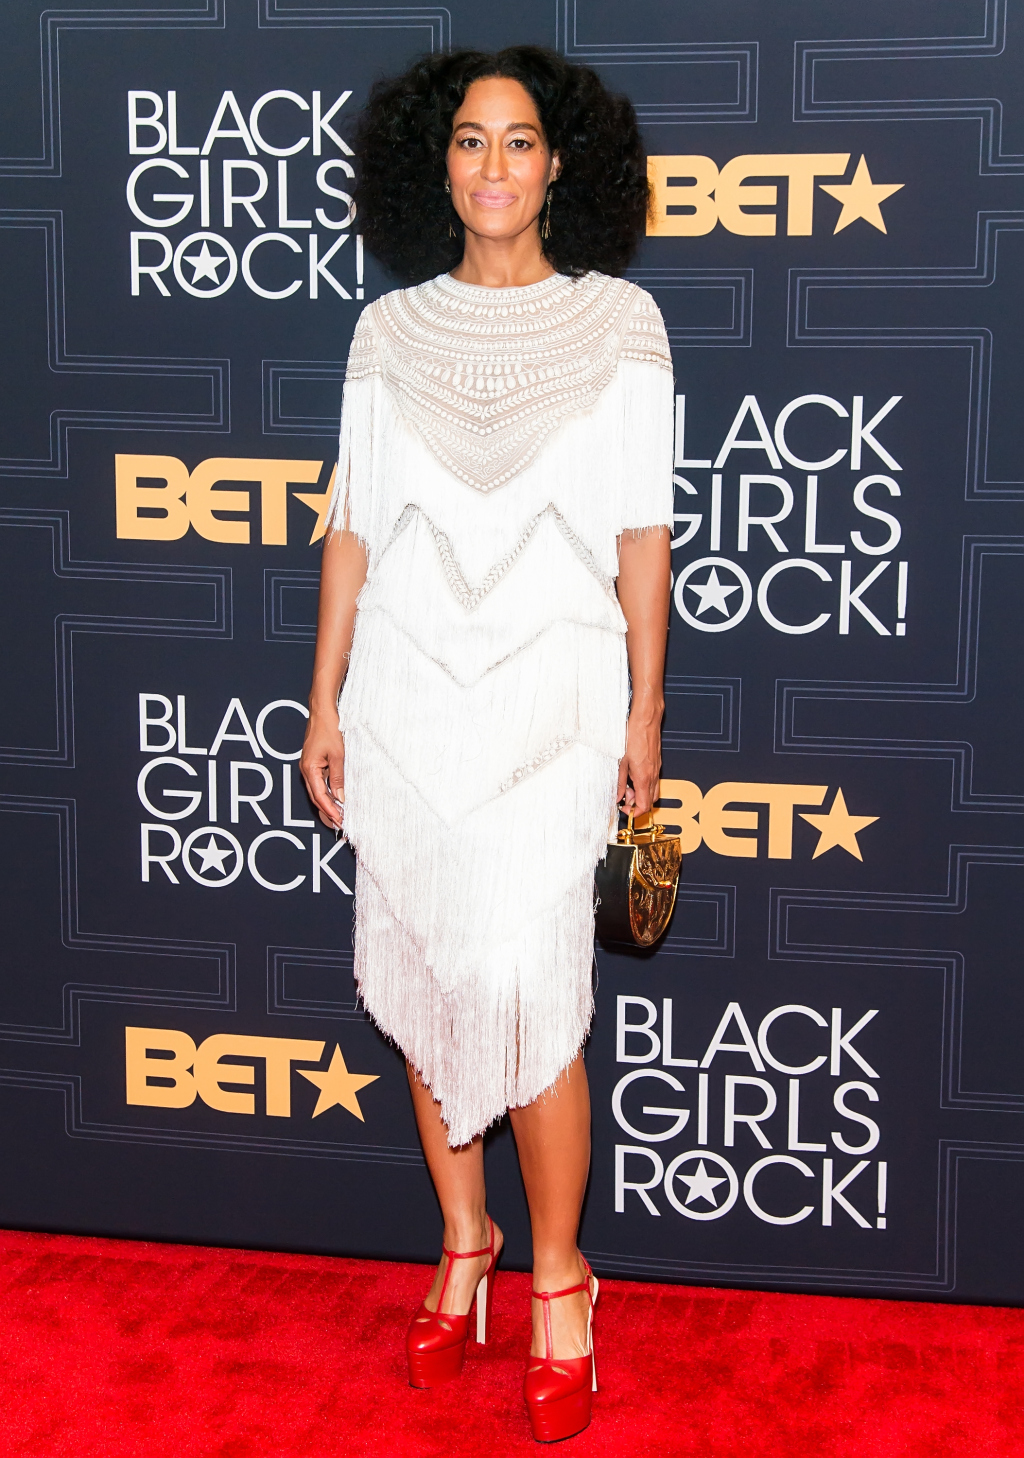 NEWARK, NEW JERSEY - APRIL 01: Actress BET Black Girls Rock! 2016 host Tracee Ellis Ross attends BET Black Girls Rock! 2016 at New Jersey Performing Arts Center on April 1, 2016 in Newark, New Jersey. (Photo by Gilbert Carrasquillo/FilmMagic)